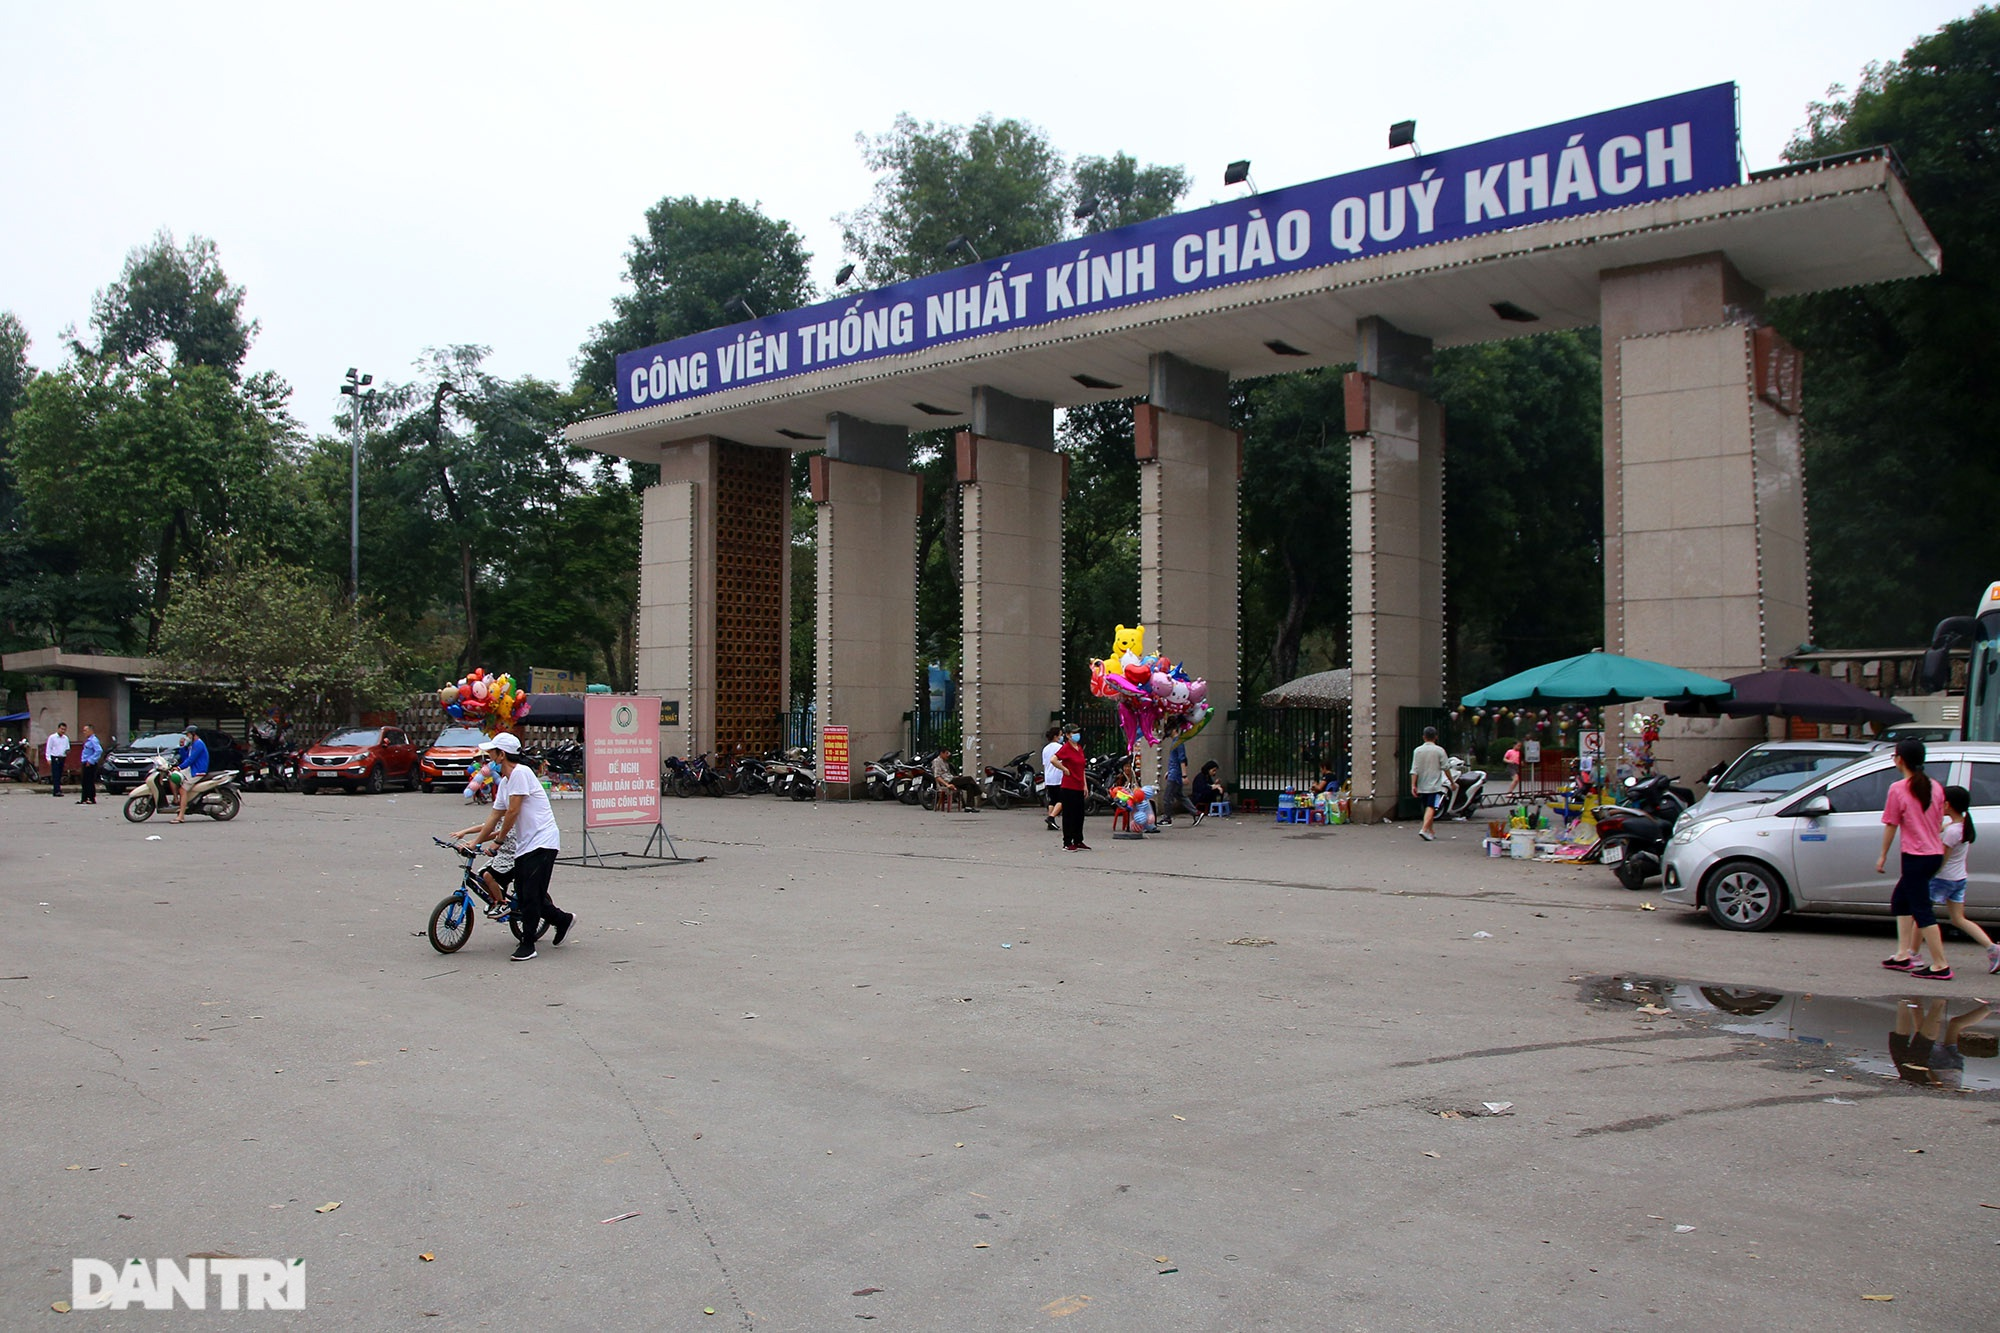 Little-known facts about the largest park in Hanoi about 60 years old - 1